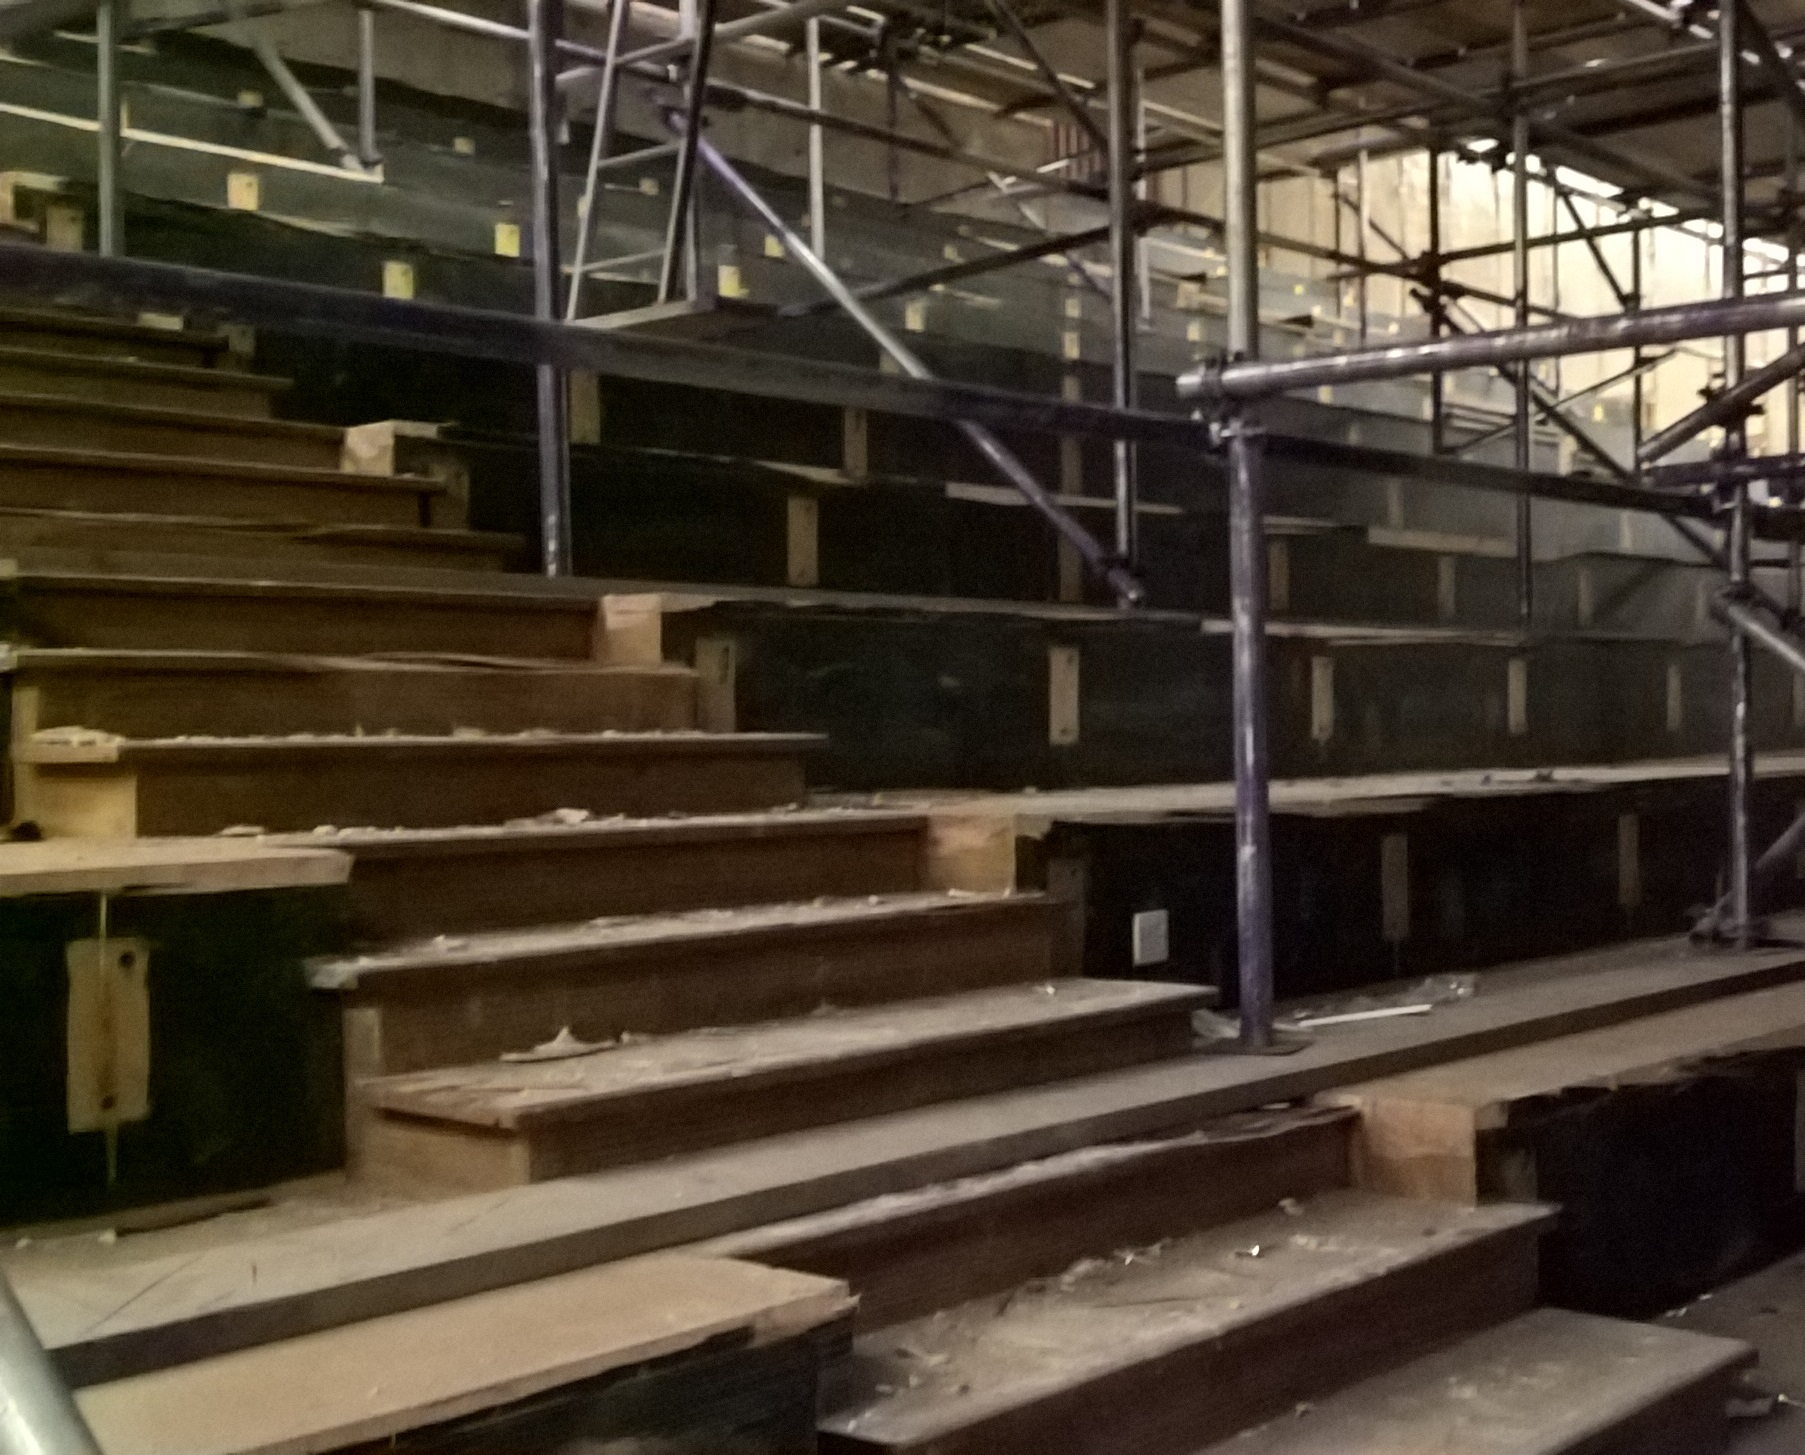 Lecture theatre in a university with scaffolding during early stages of refurbishment